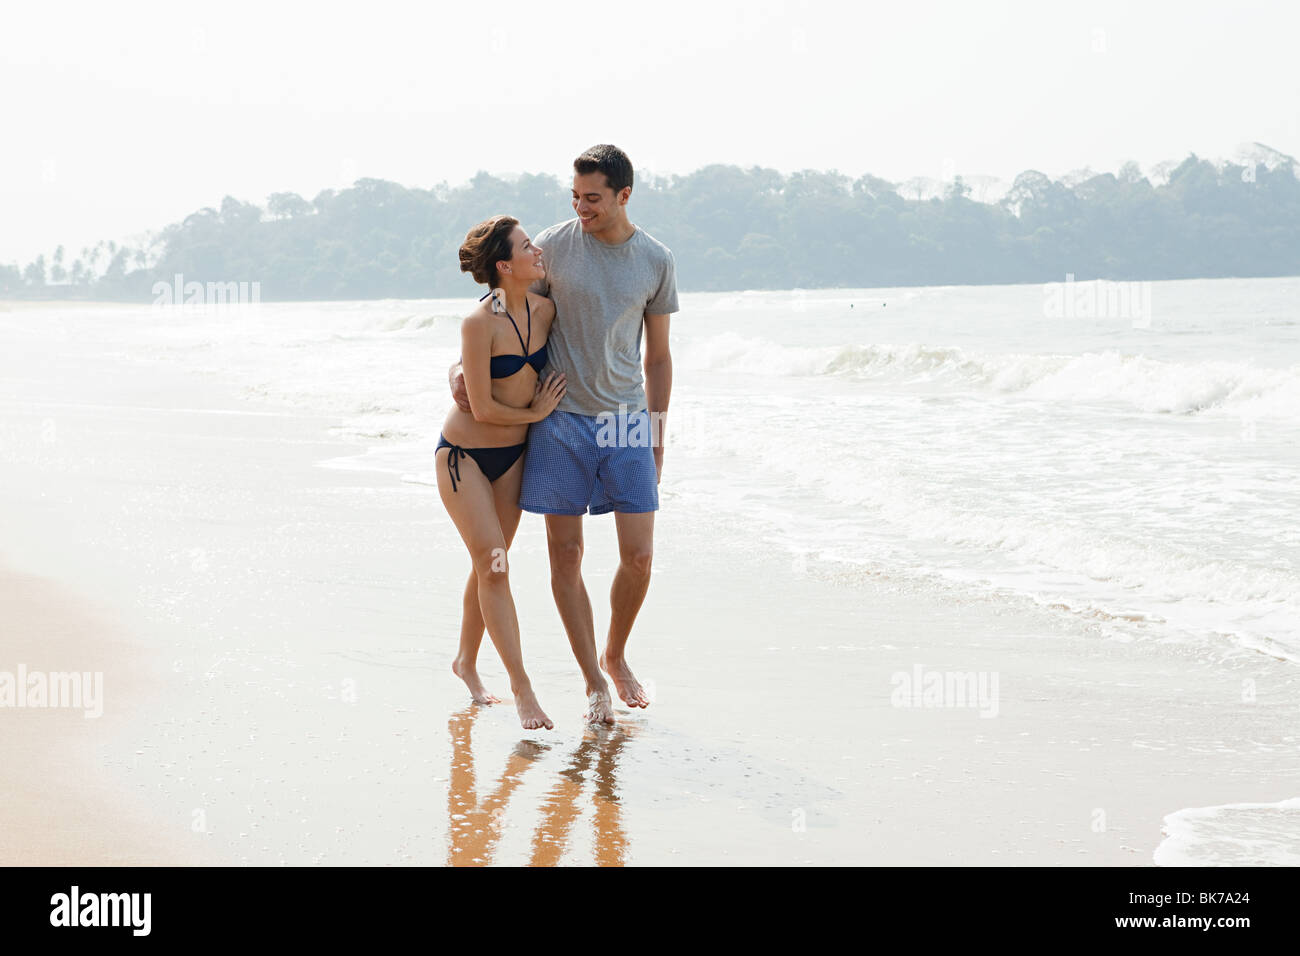 Couple walking by the ocean - Stock Image